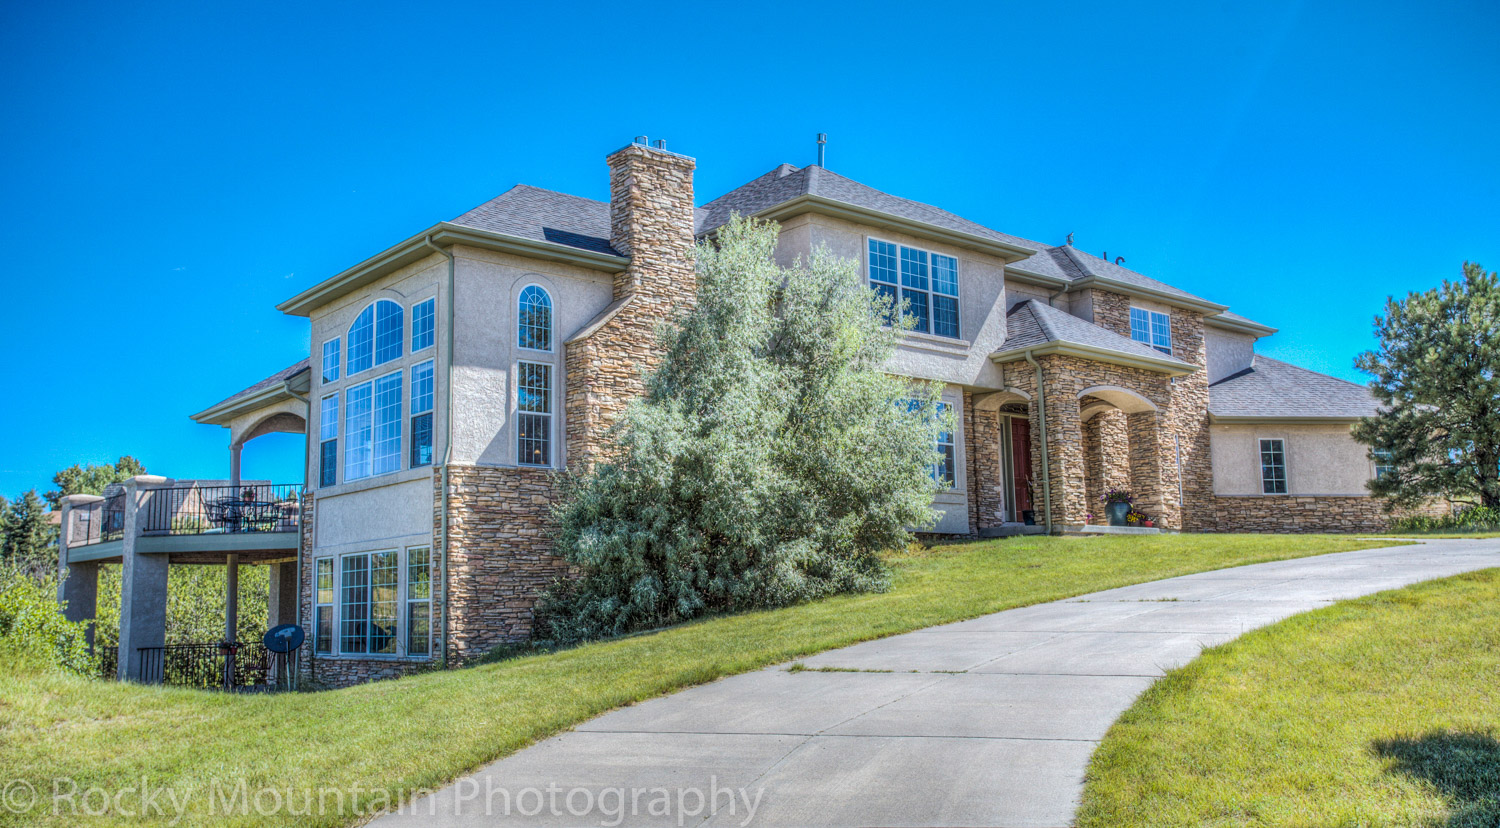 Residential Real Estate HDR Exterior-16